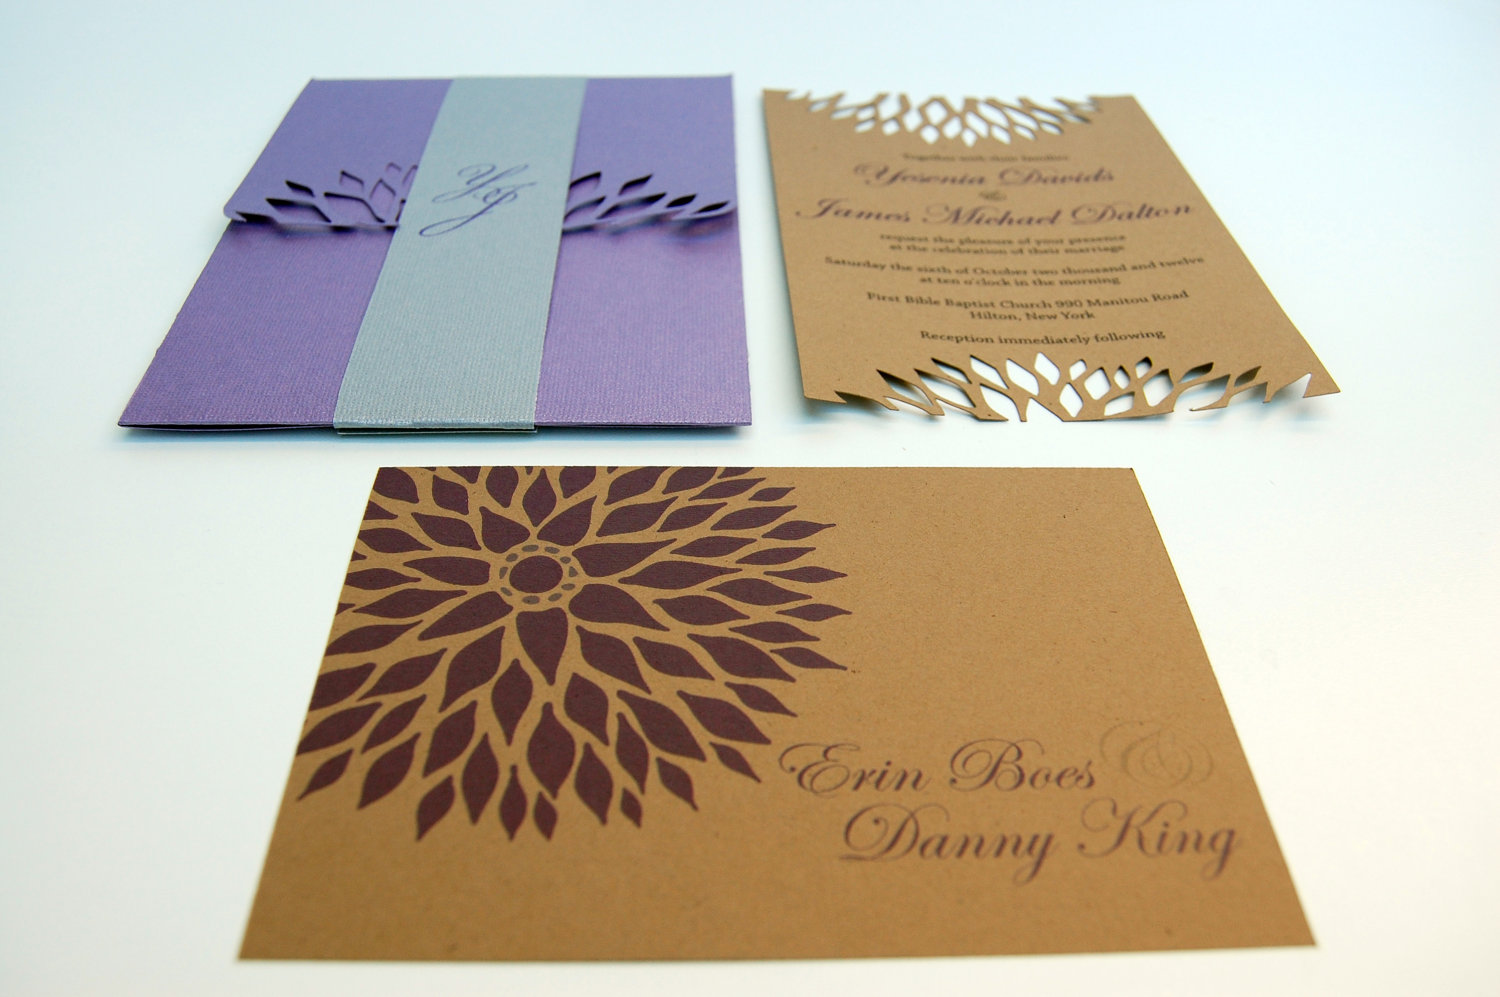 Handmade-wedding-stationery-decor-using-kraft-paper-etsy-weddings-9.original